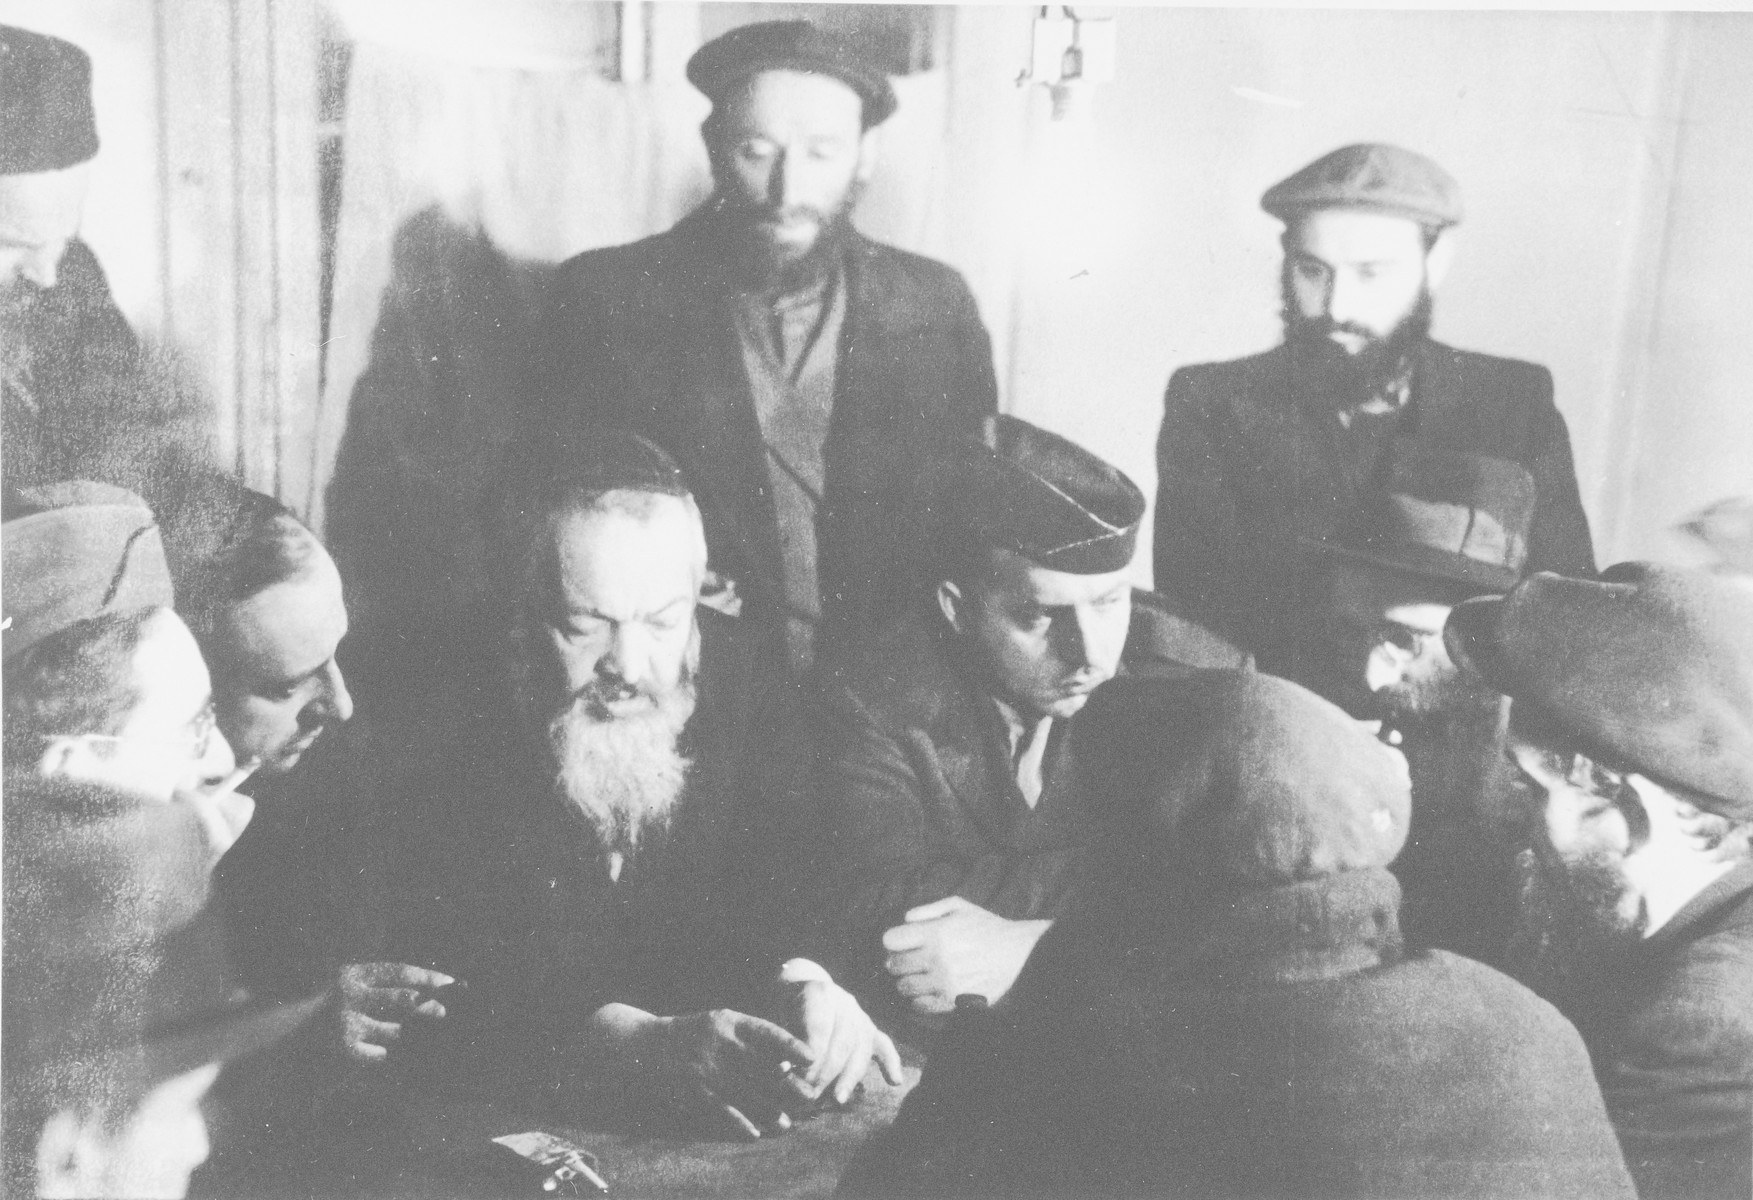 Rabbi Nathan Baruch meets with a group of religious men in the Pocking displaced persons' camp.